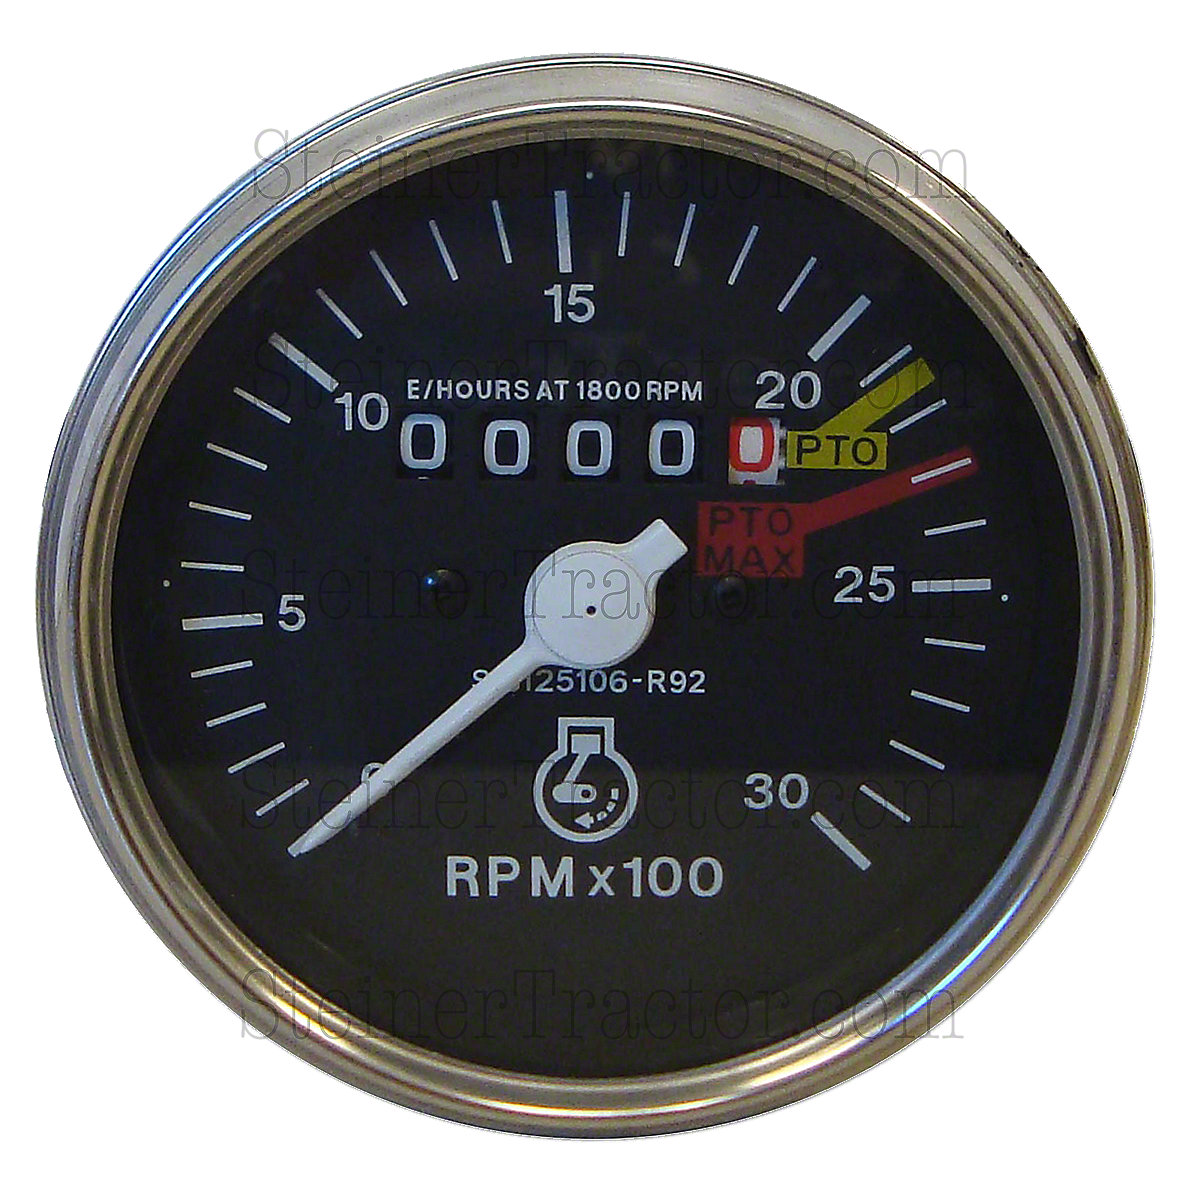 Tachometer Hour Meter For International Farmall: Hydro 84, 2400, 454, 646, 484, 485, 584, 585, 674, 684, 784, 785, 884, 885, Hydro 2500a Gas or Diesel W/SN#: 100001 and Up, 574 Hydro,